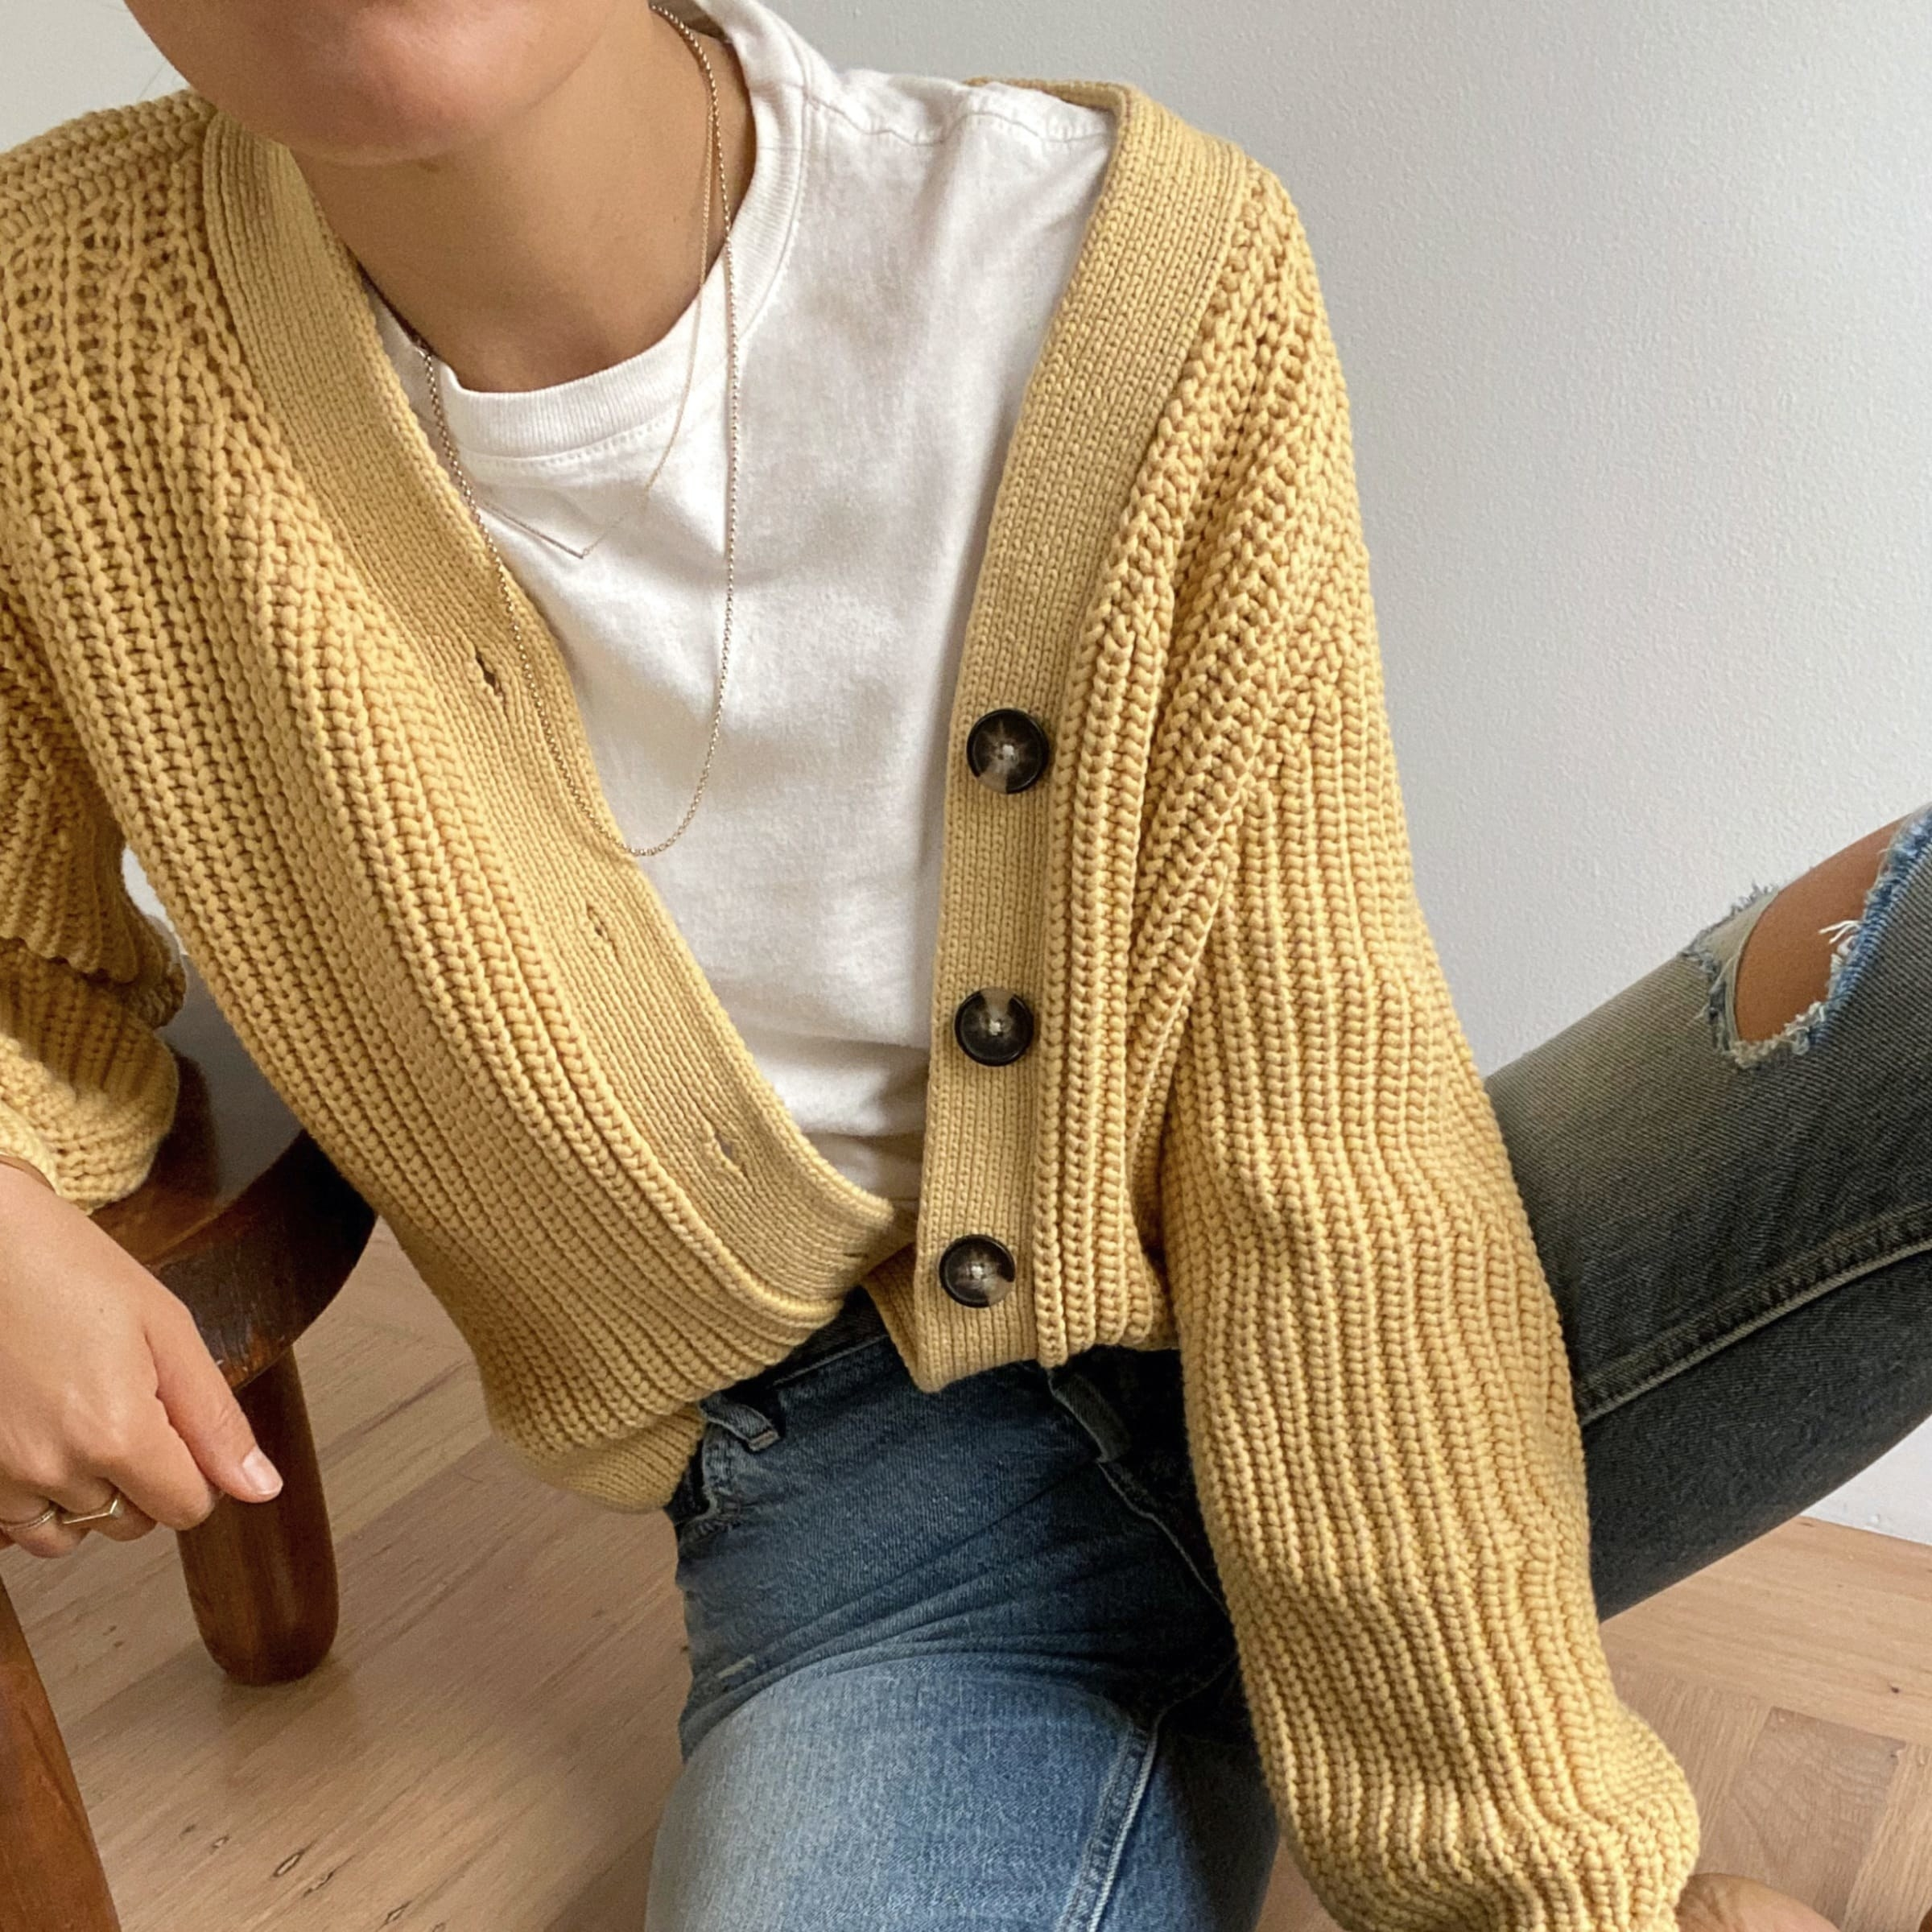 Model wearing the textured knit cardigan in yellow with brown buttons down the left side.